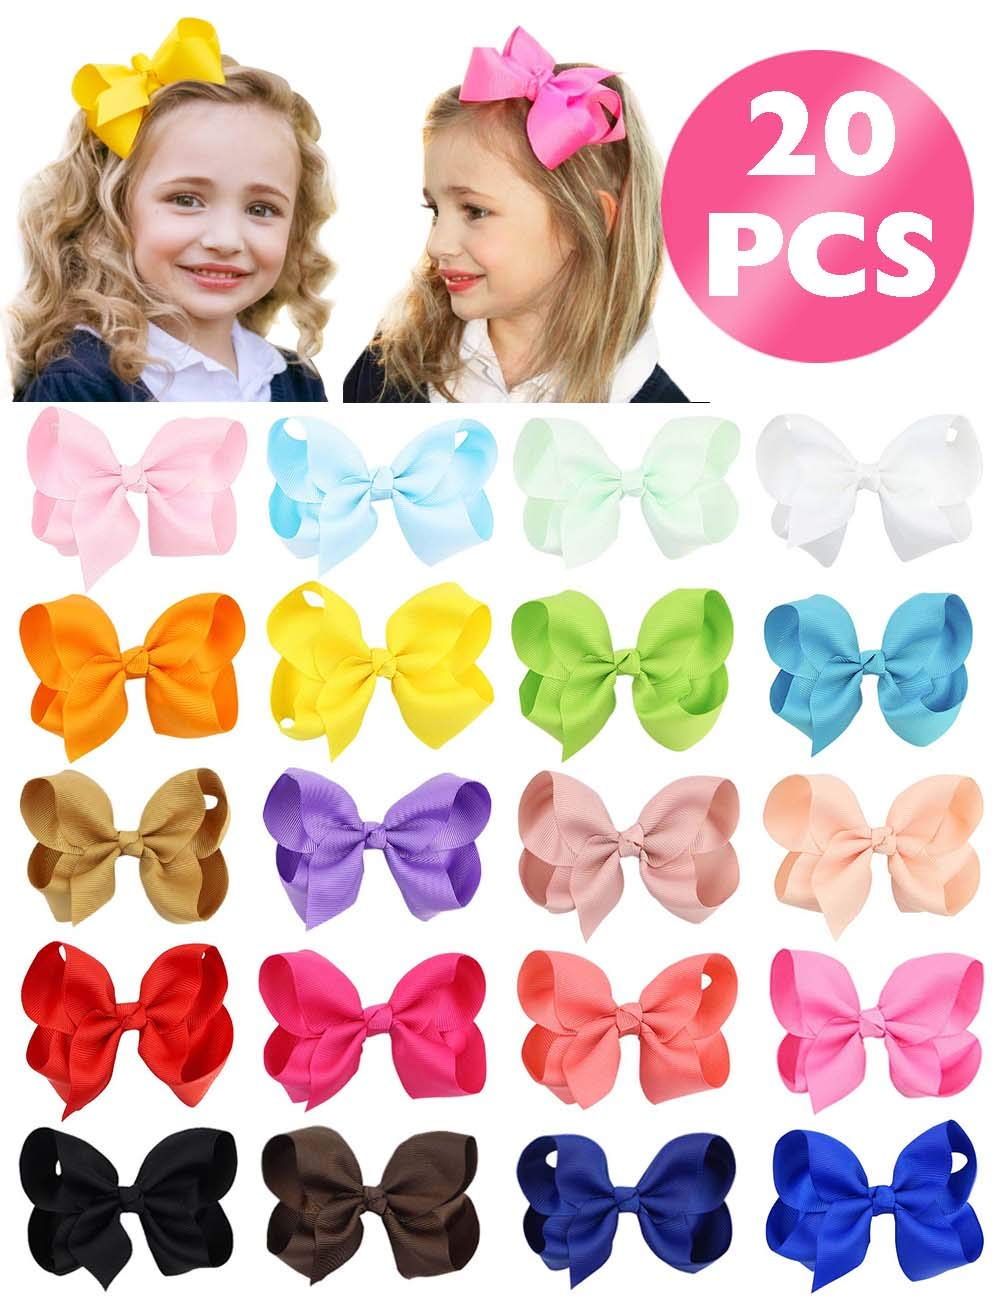 """HLIN 20 Pcs 4.5"""" Grosgrain Ribbon Boutique Christmas Hair Bows Alligator Clips Hand Made for Baby Girls Toddlers Kids"""